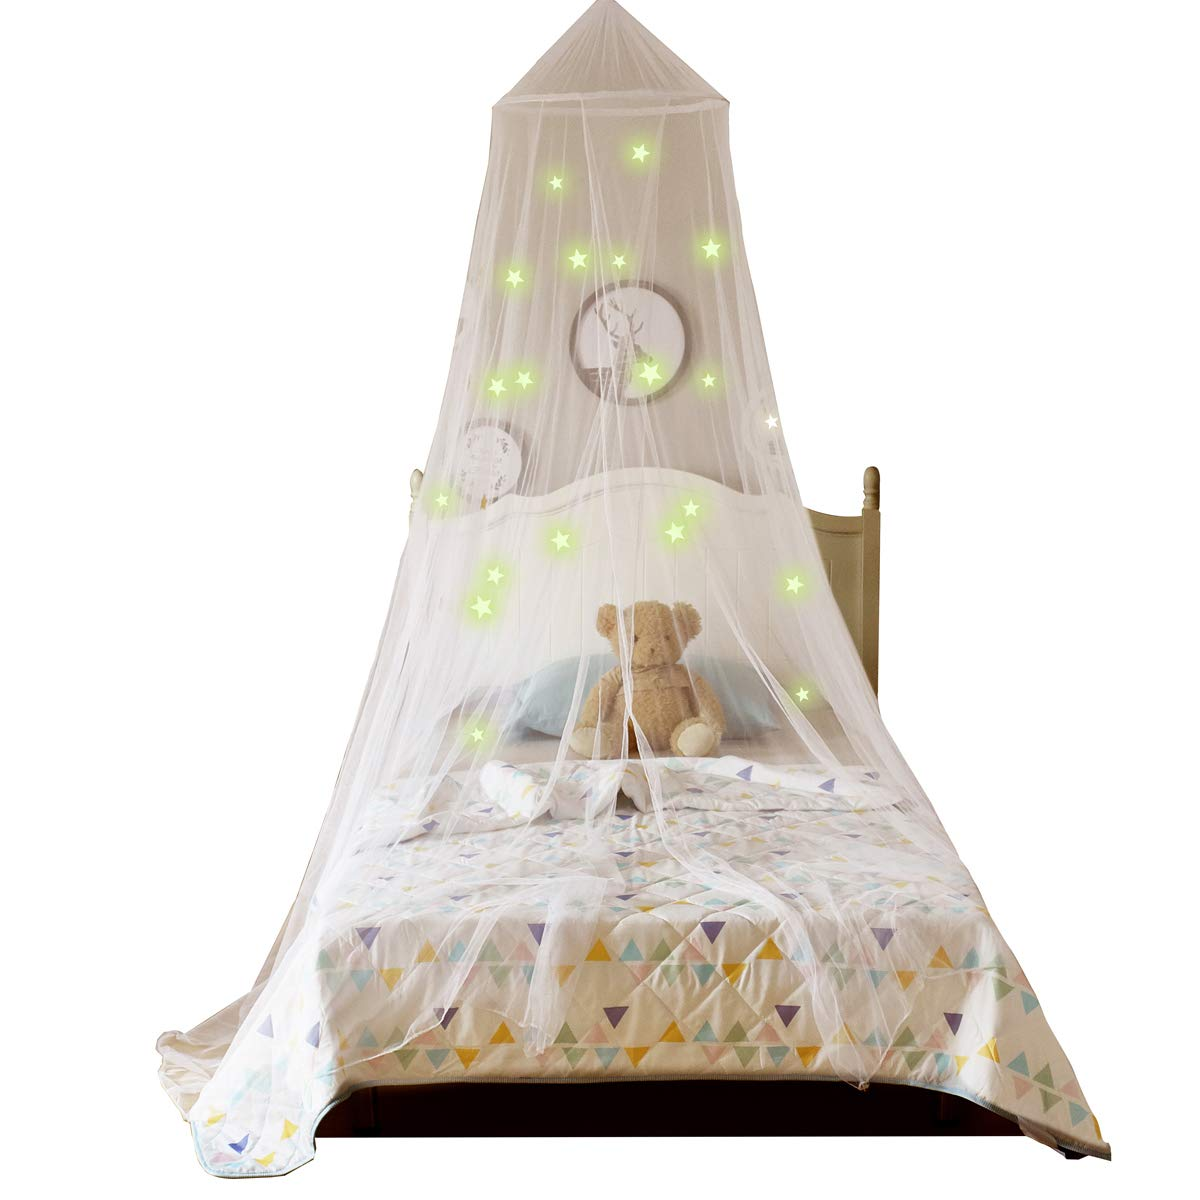 A LOVE BRAND Glowing Mosquito Net Dome Bed Canopy with Stars,for Kids Playing Reading Bedroom Decor